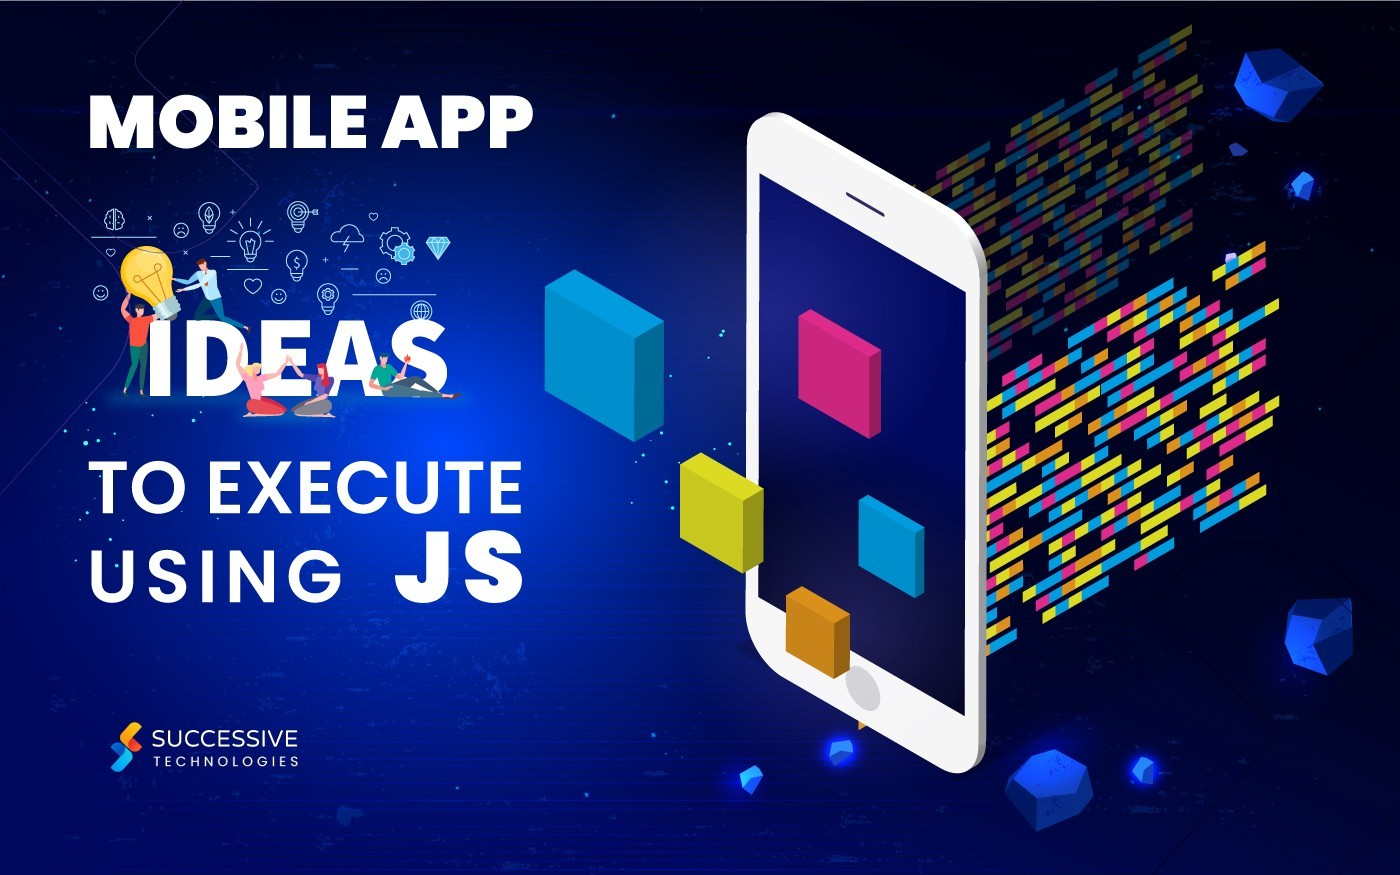 Mobile App ideas JavaScript